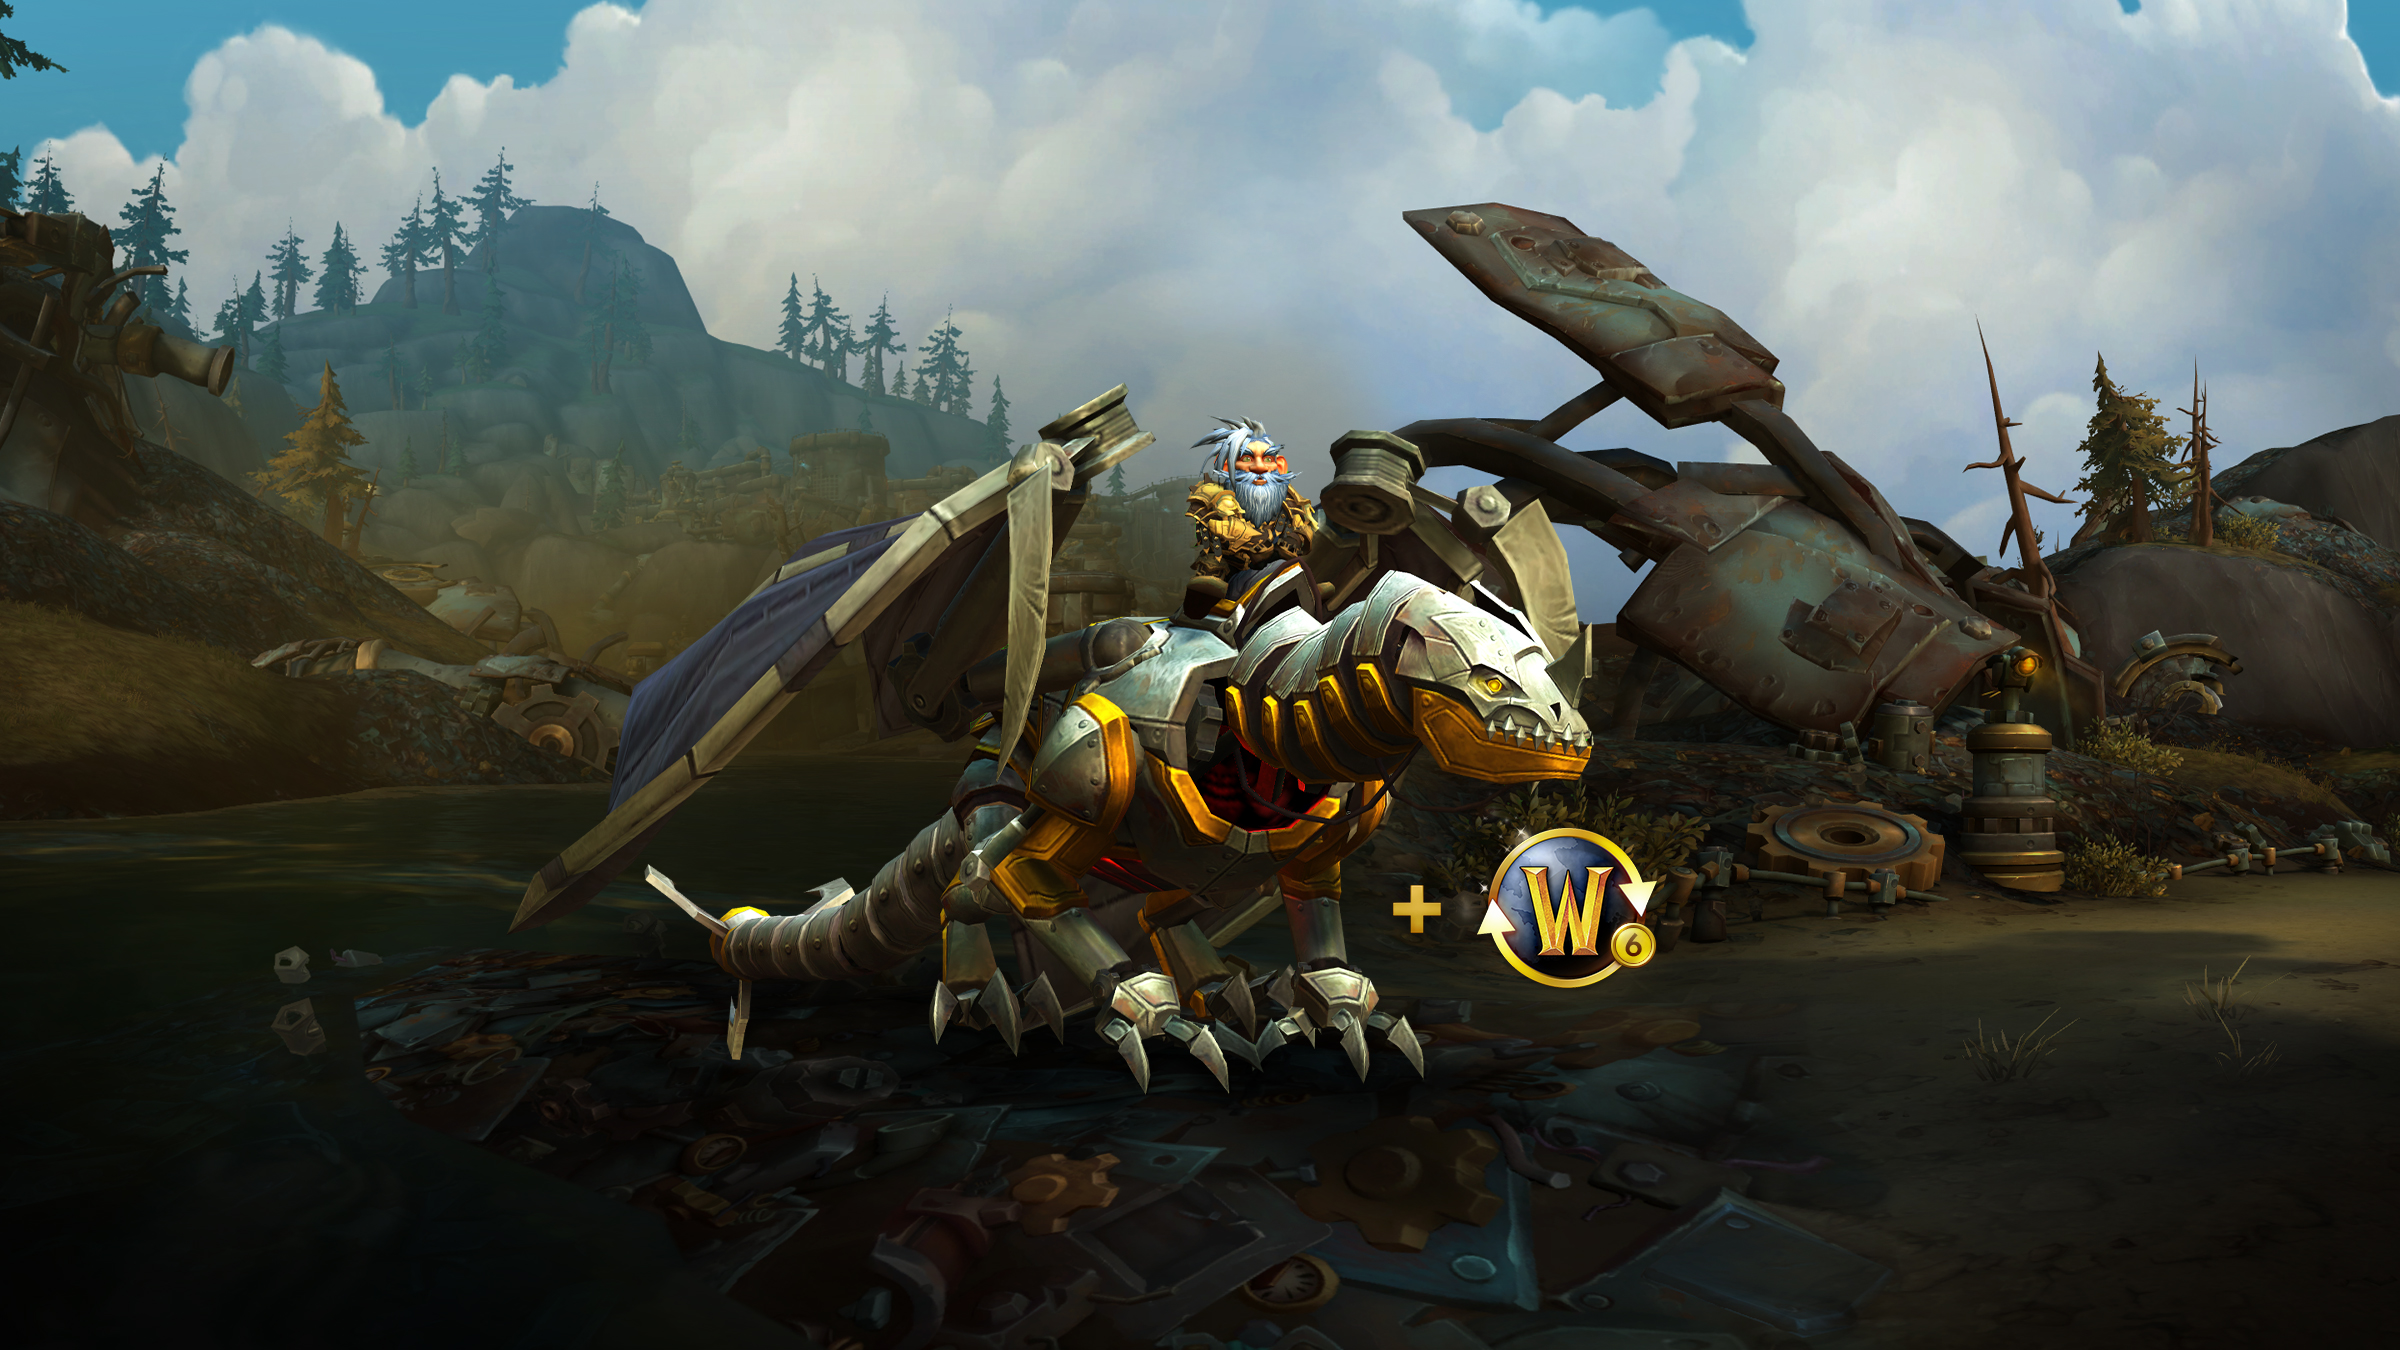 Purchase a 6-Month Subscription and Get a New Mount!